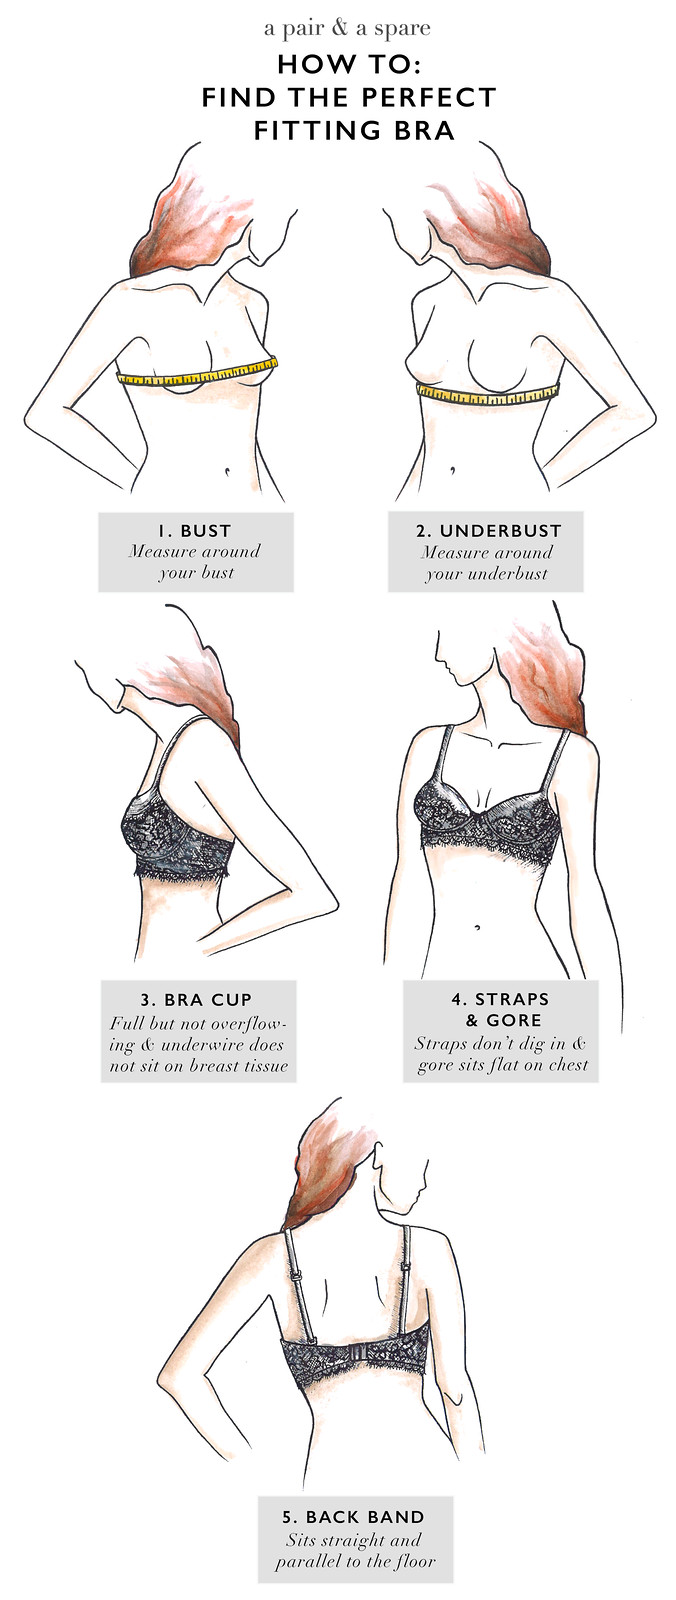 How to find the perfect fitting bra